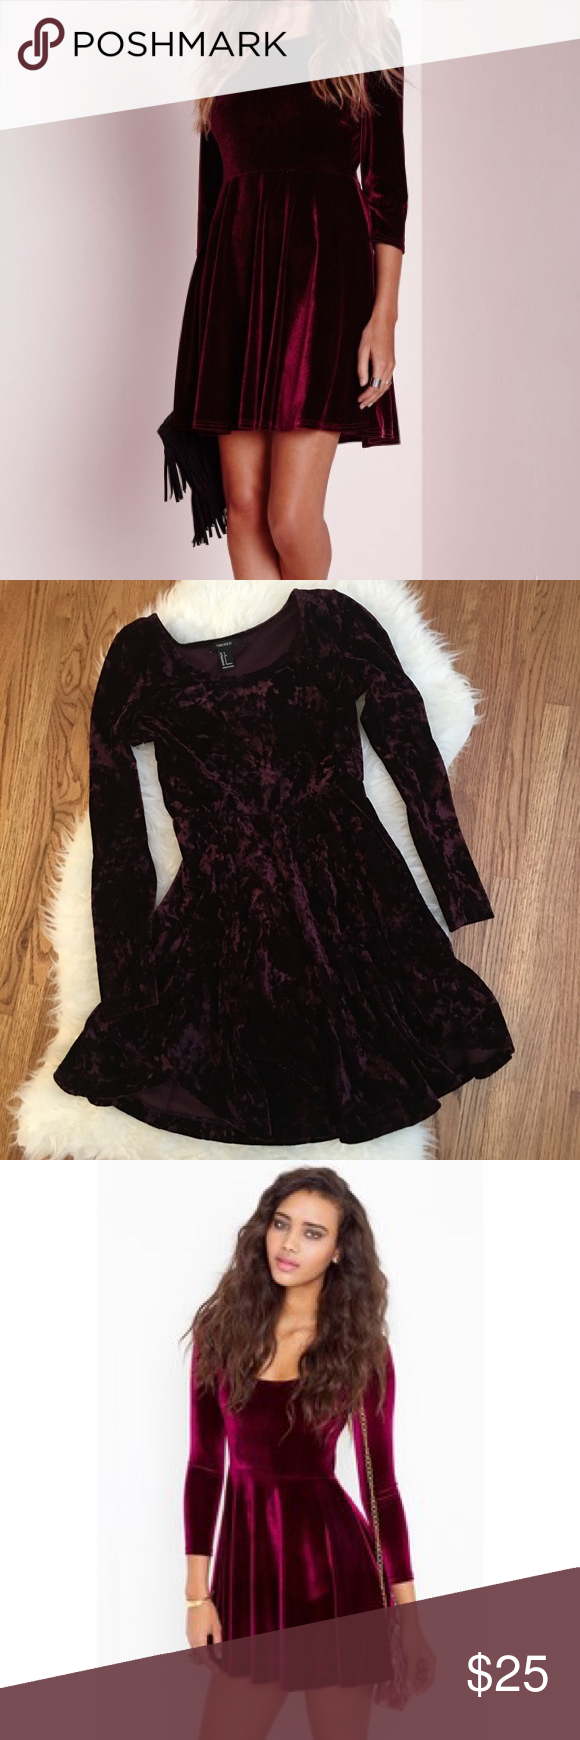 Oxblood Velvet Skater Dress Size small perfect condition- F21 not UA Urban Outfitters Dresses Mini